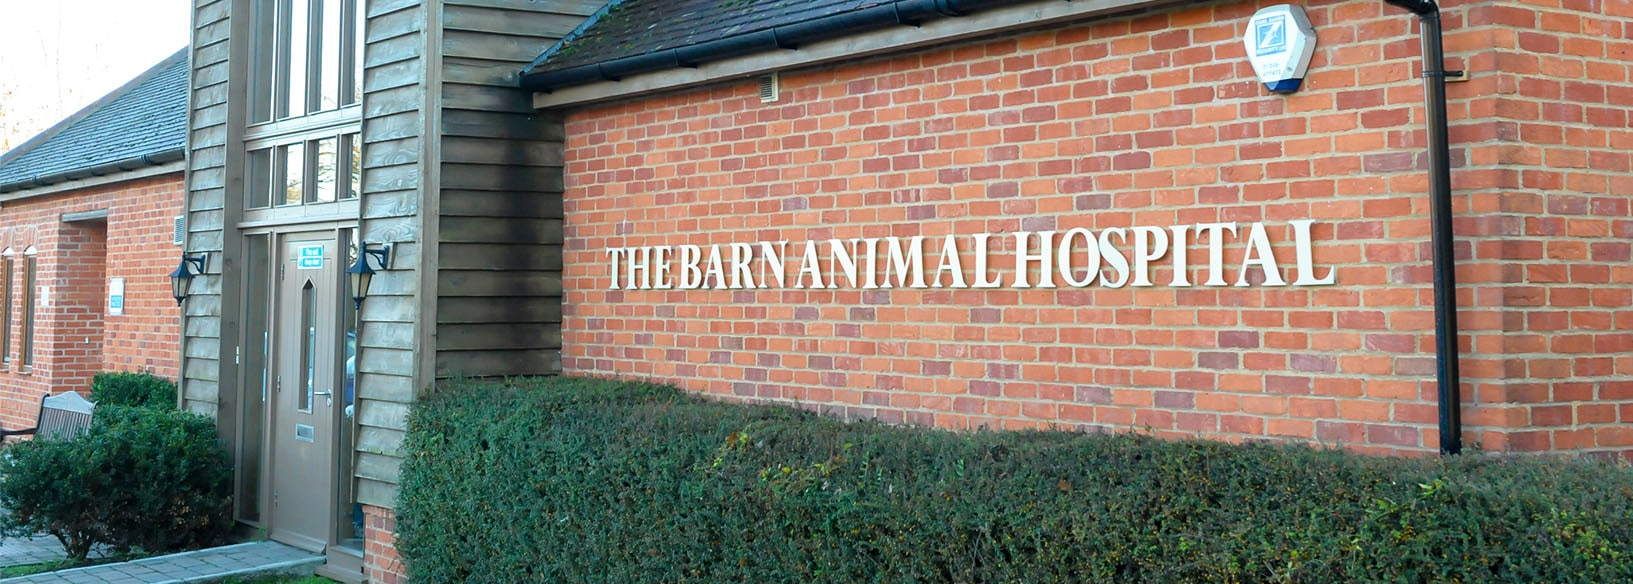 The Barn Animal Hospital - Vets in Basingstoke